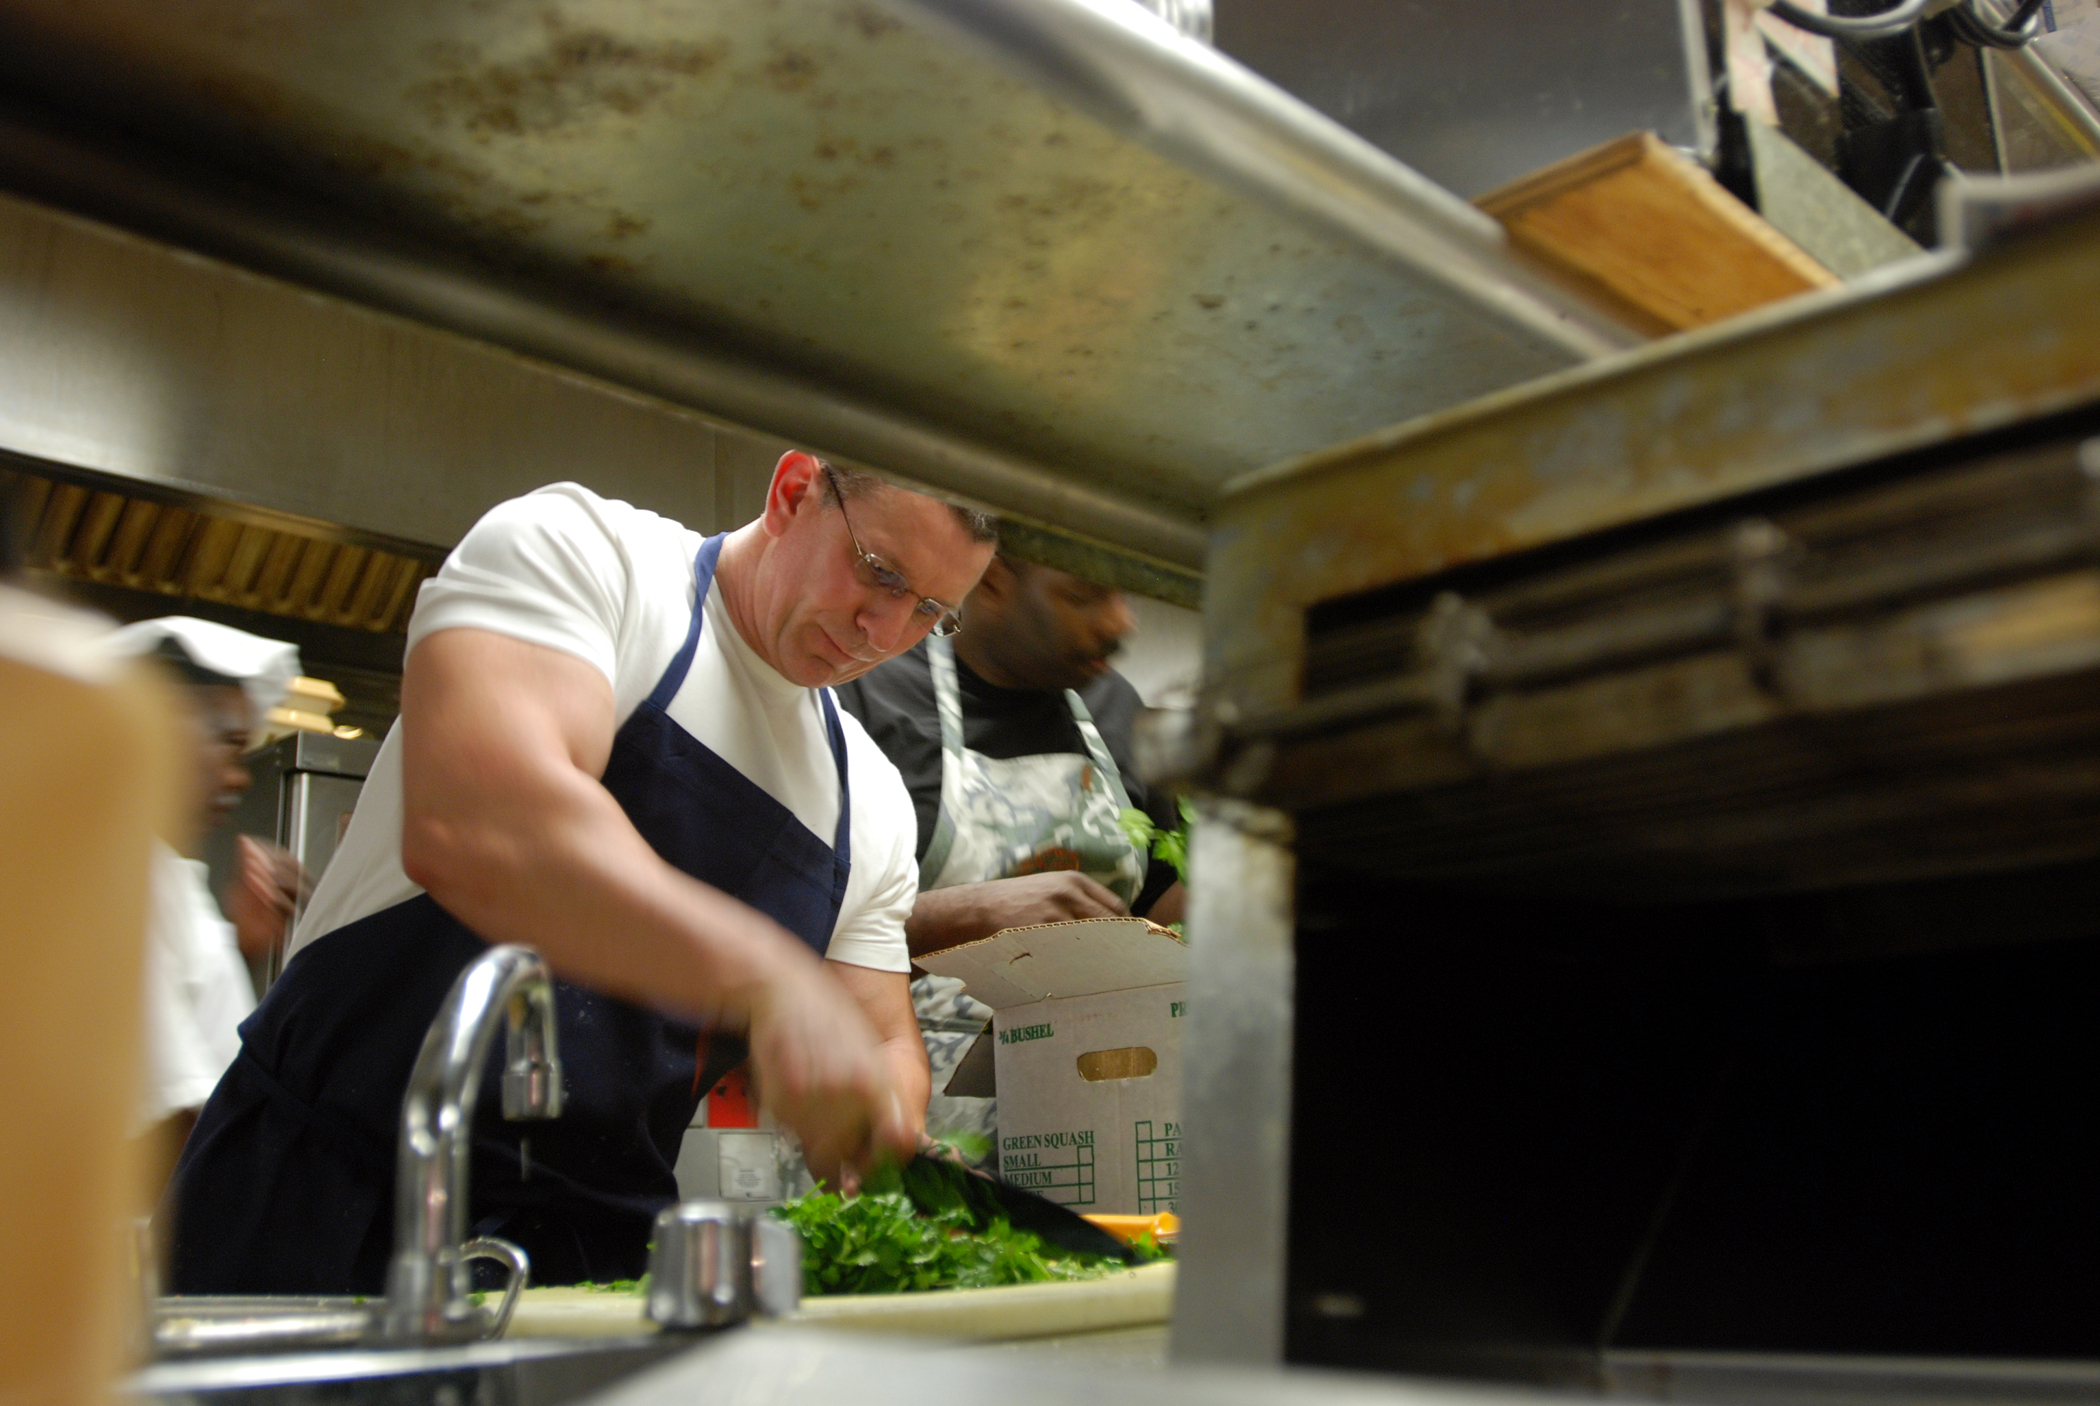 Food Network Images Chef Robert Irvine HD Wallpaper And Background Photos